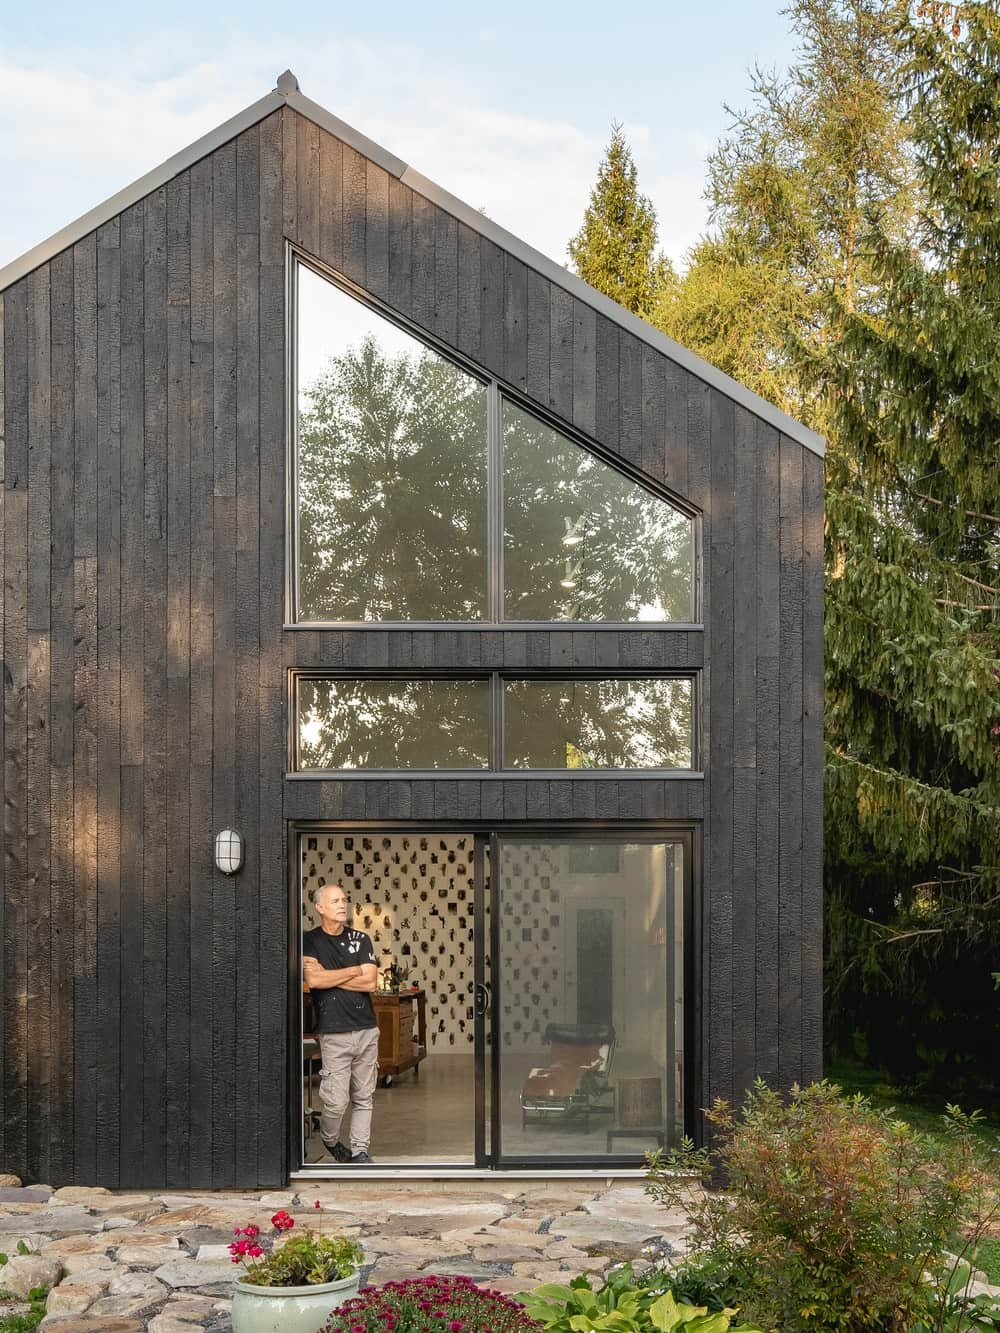 This is a close look at the house extension with dark wooden exterior walls that is complemented by the glass walls.